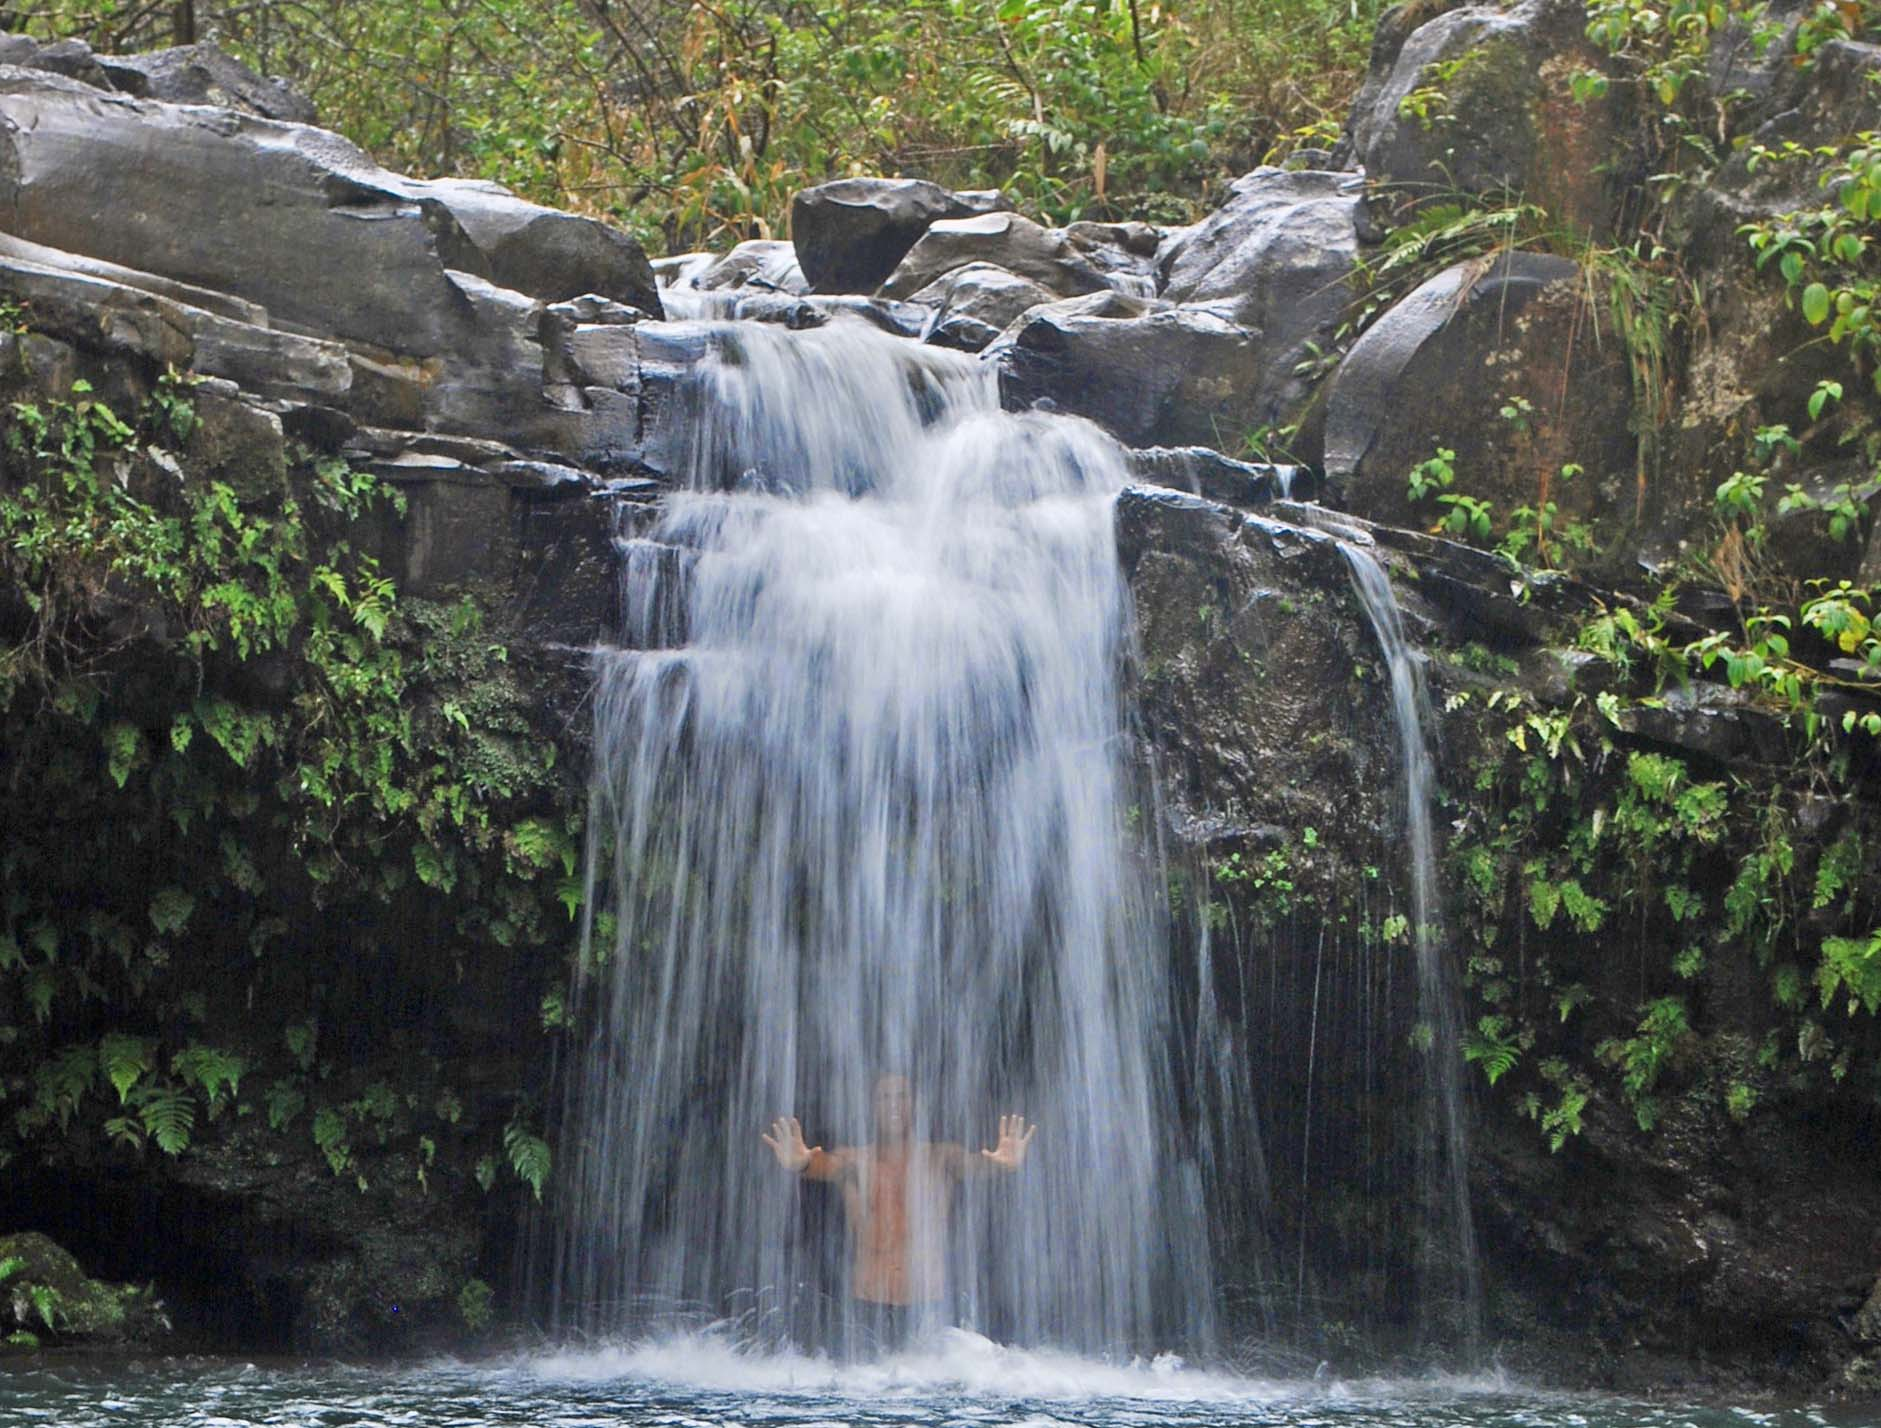 A Waterfall in Maui